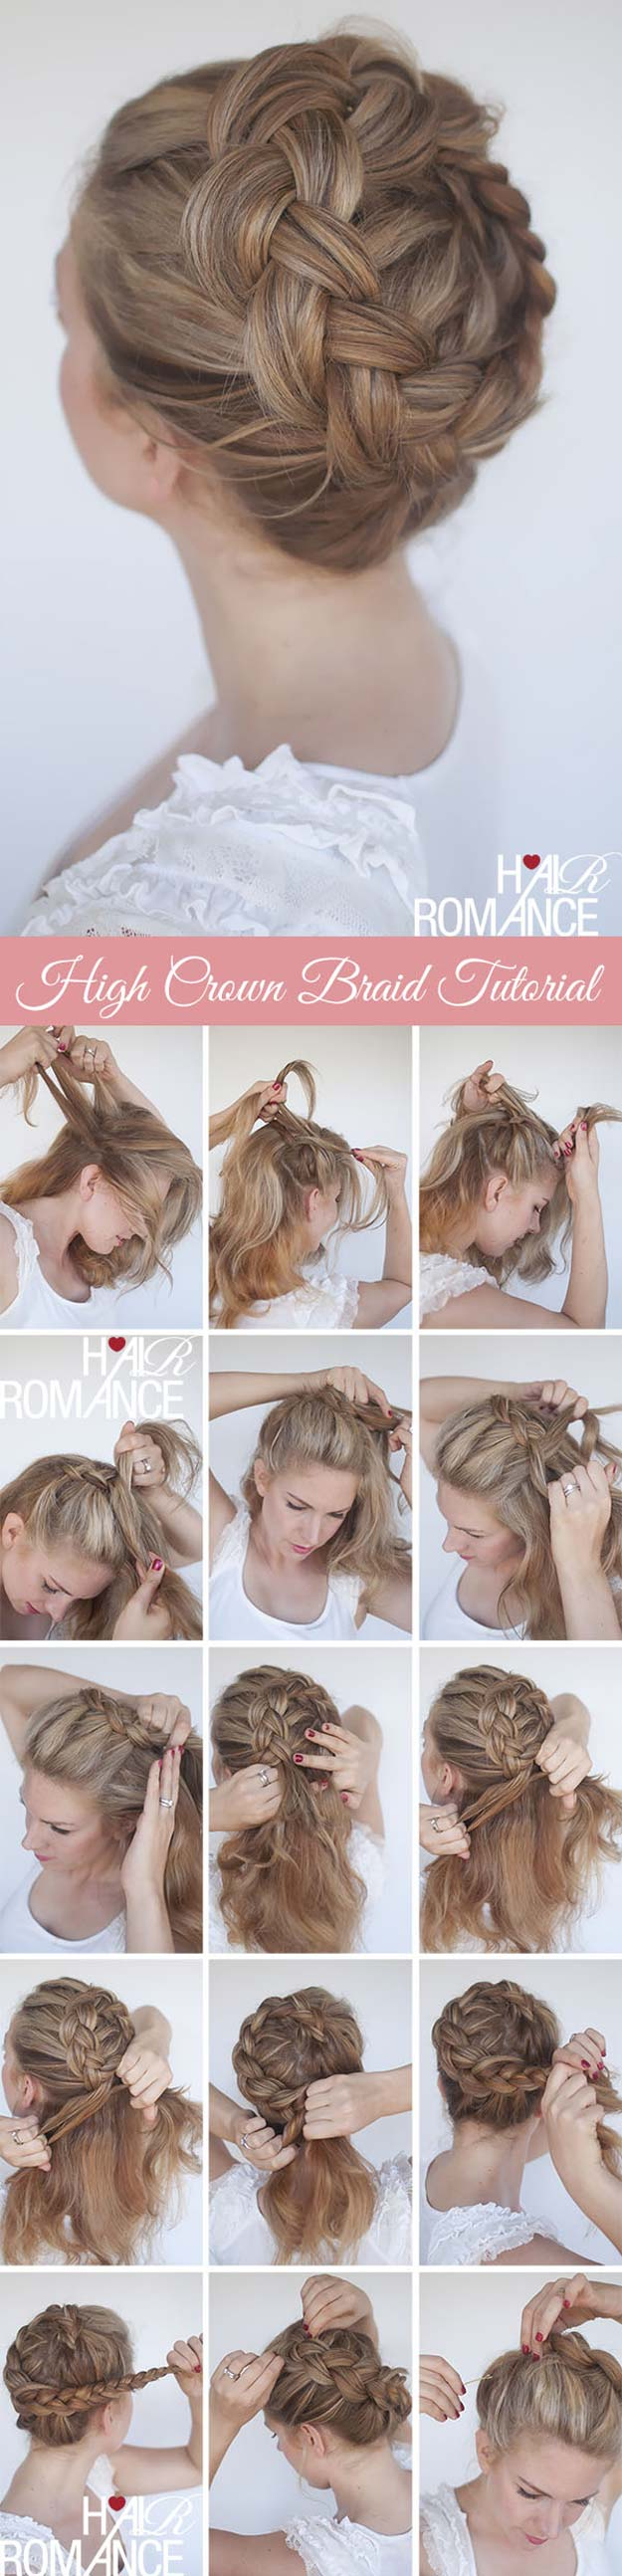 40 of the best cute hair braiding tutorials best hair braiding tutorials high braided crown tutorial easy step by step tutorials for baditri Image collections